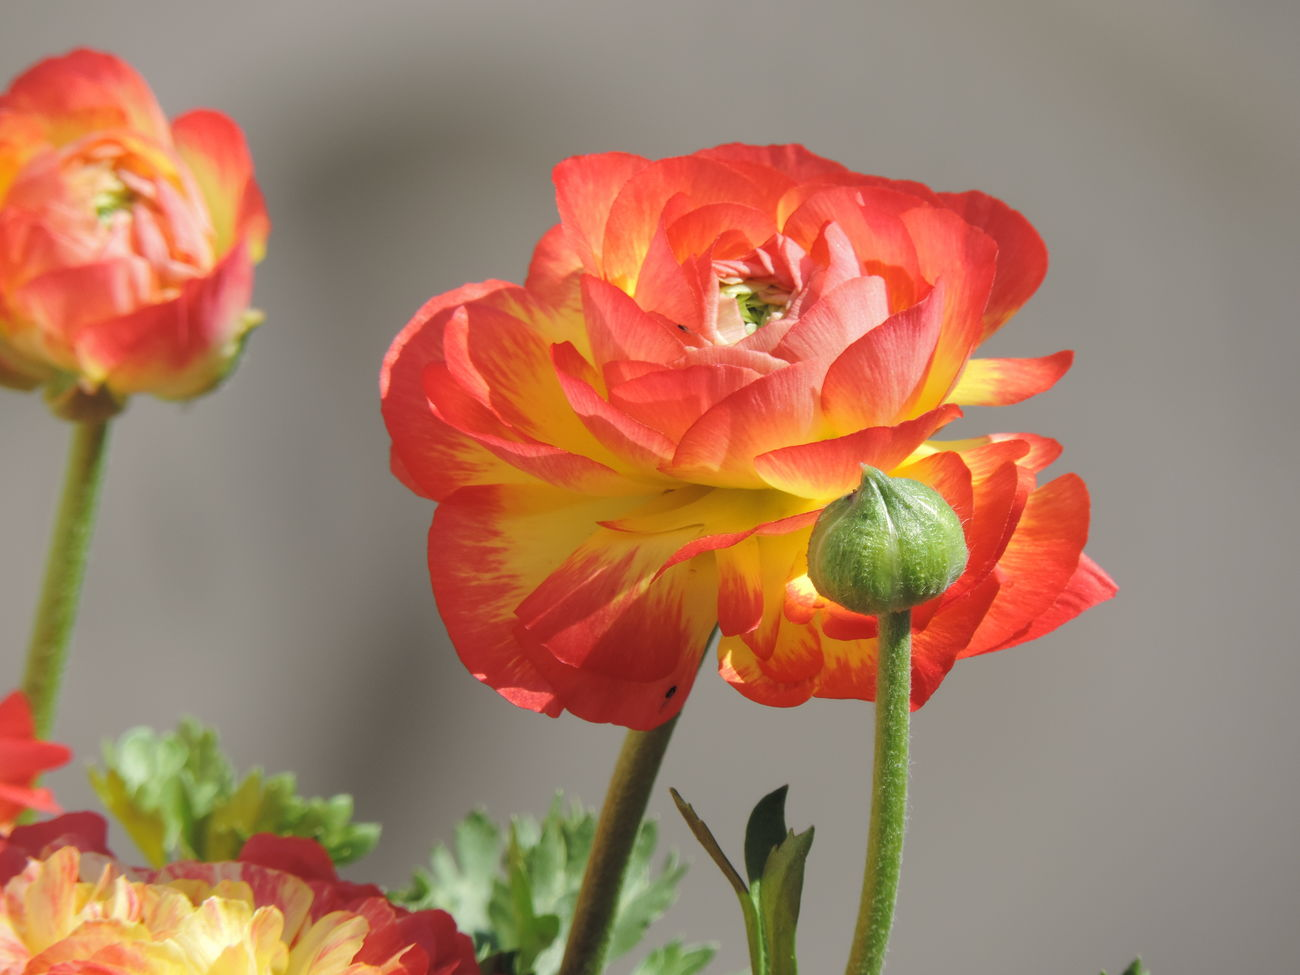 Beauty In Nature Close-up Day Flower Flower Head Fragility Freshness Growth Nature No People Orange Color Outdoors Petal Plant Poppy